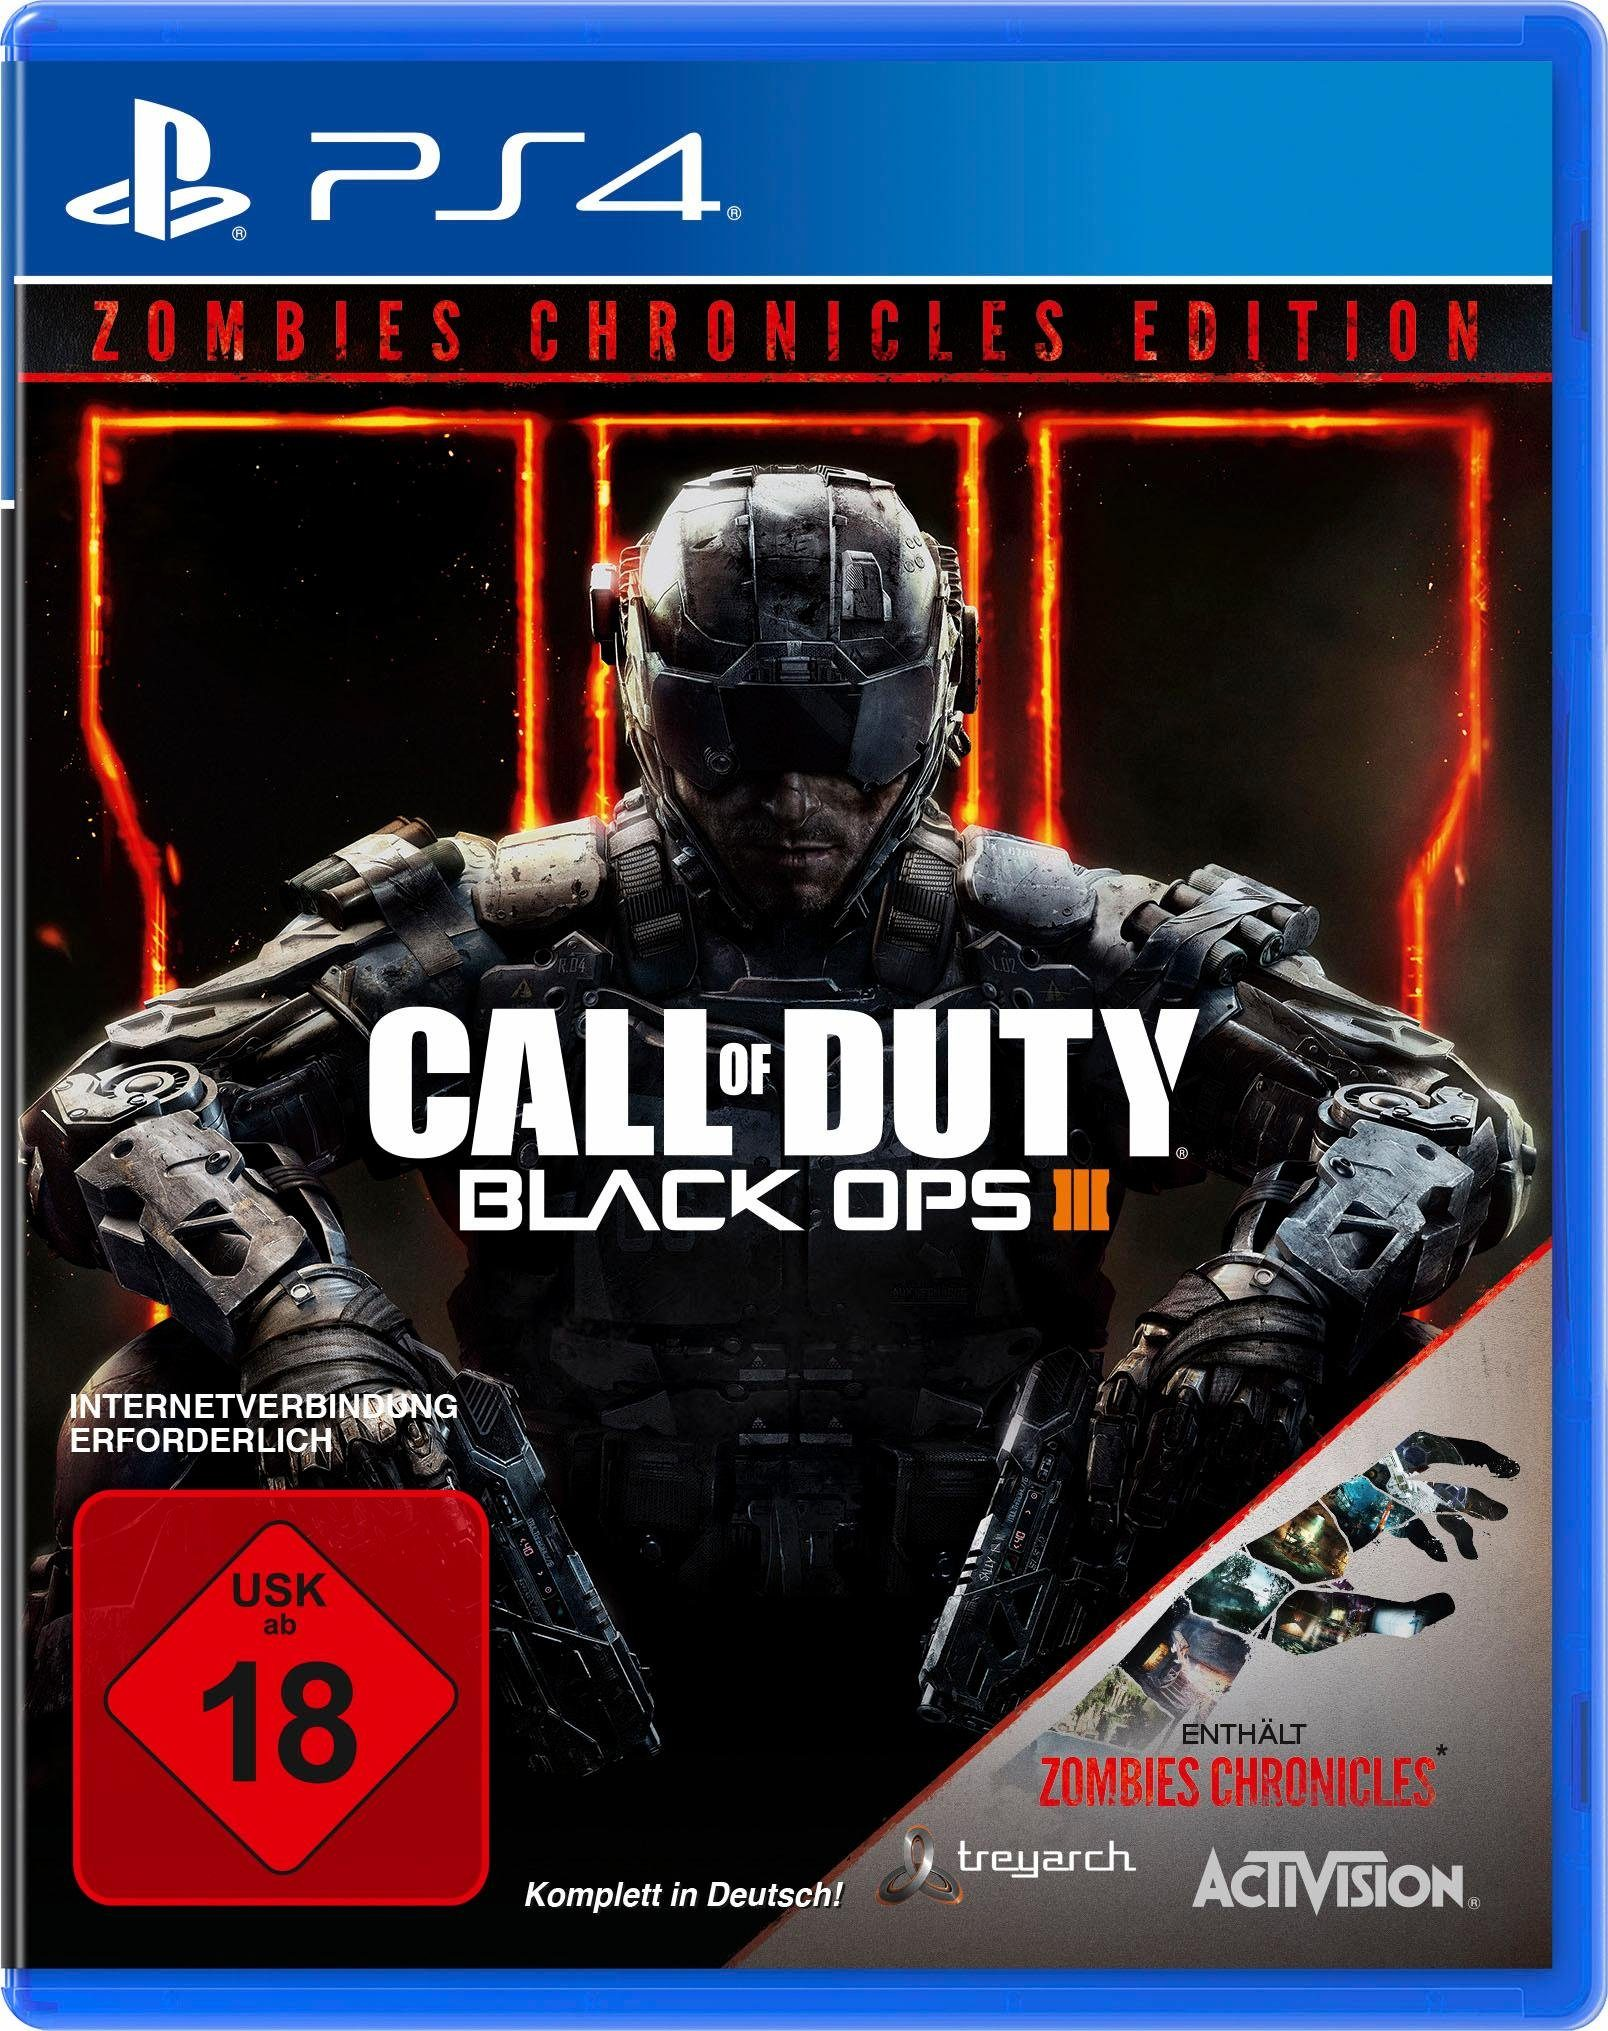 Call of Duty: Black Ops III Zombies Chronicles PlayStation 4